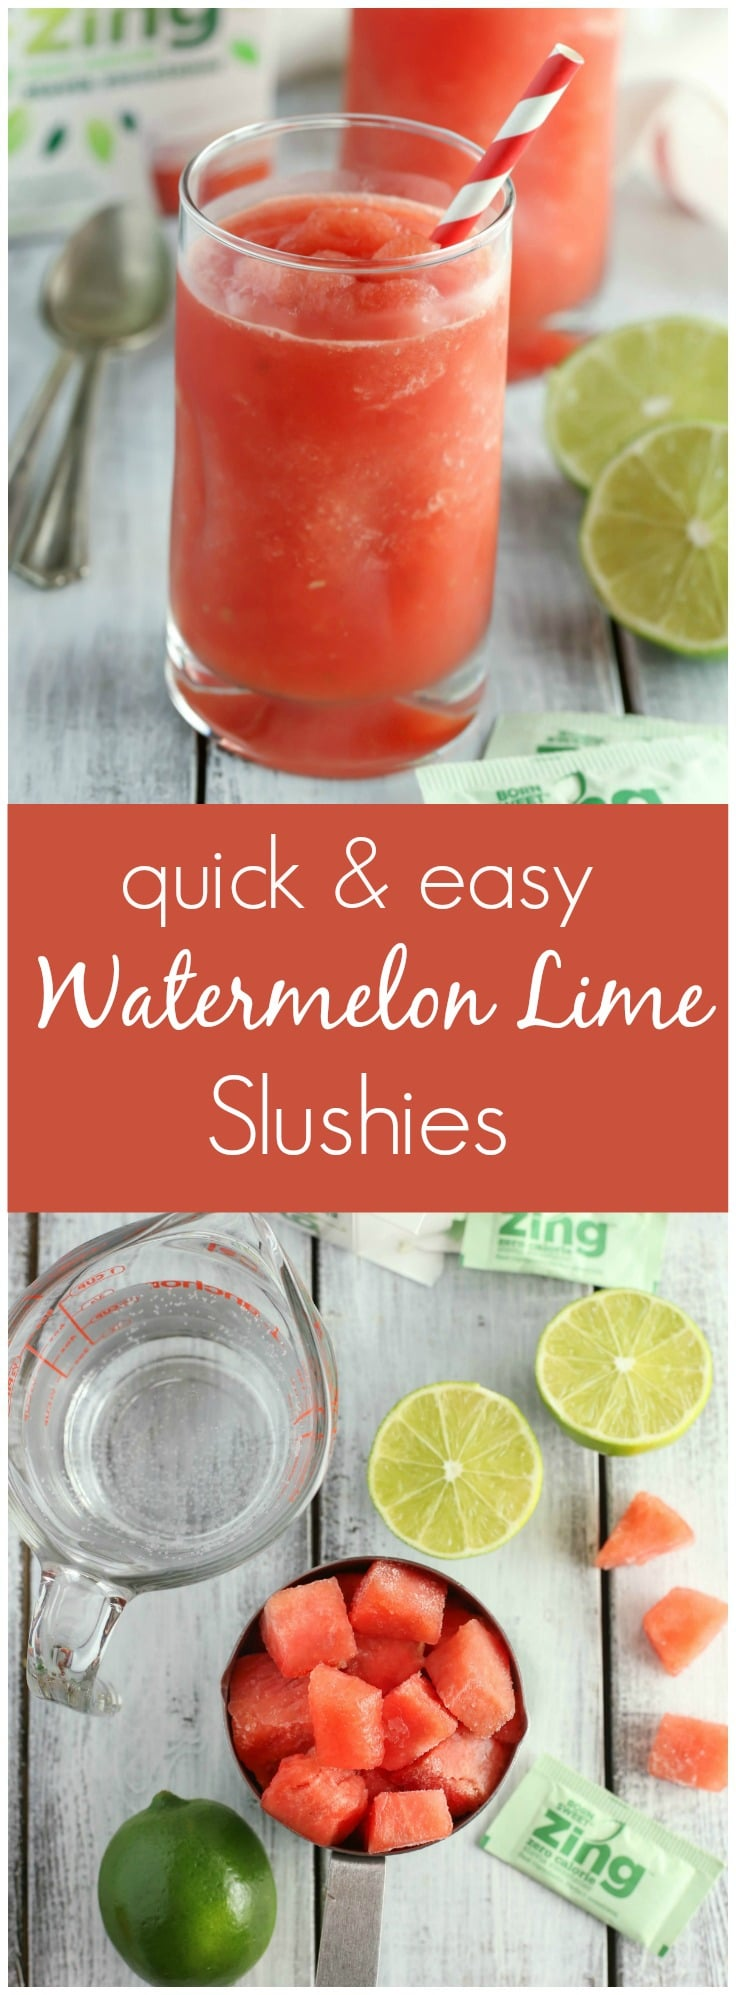 These Watermelon Lime Slushies are the perfect combination of sweet and tart. With just four ingredients, these slushies are perfect for an easy summer drink!